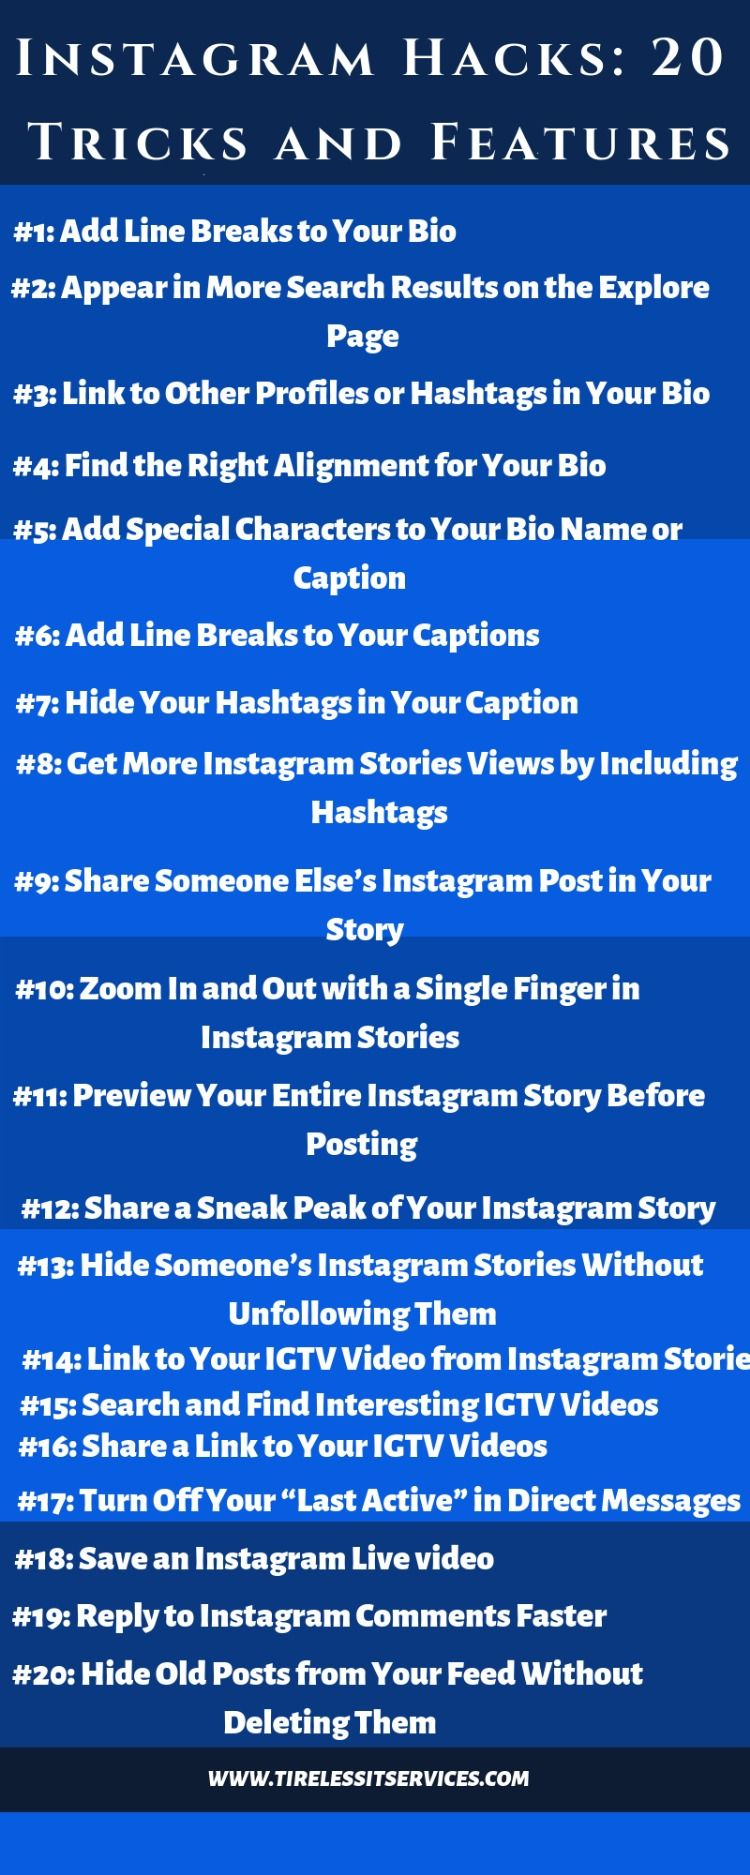 How To Share An Instagram Post To Your Story Teknologi